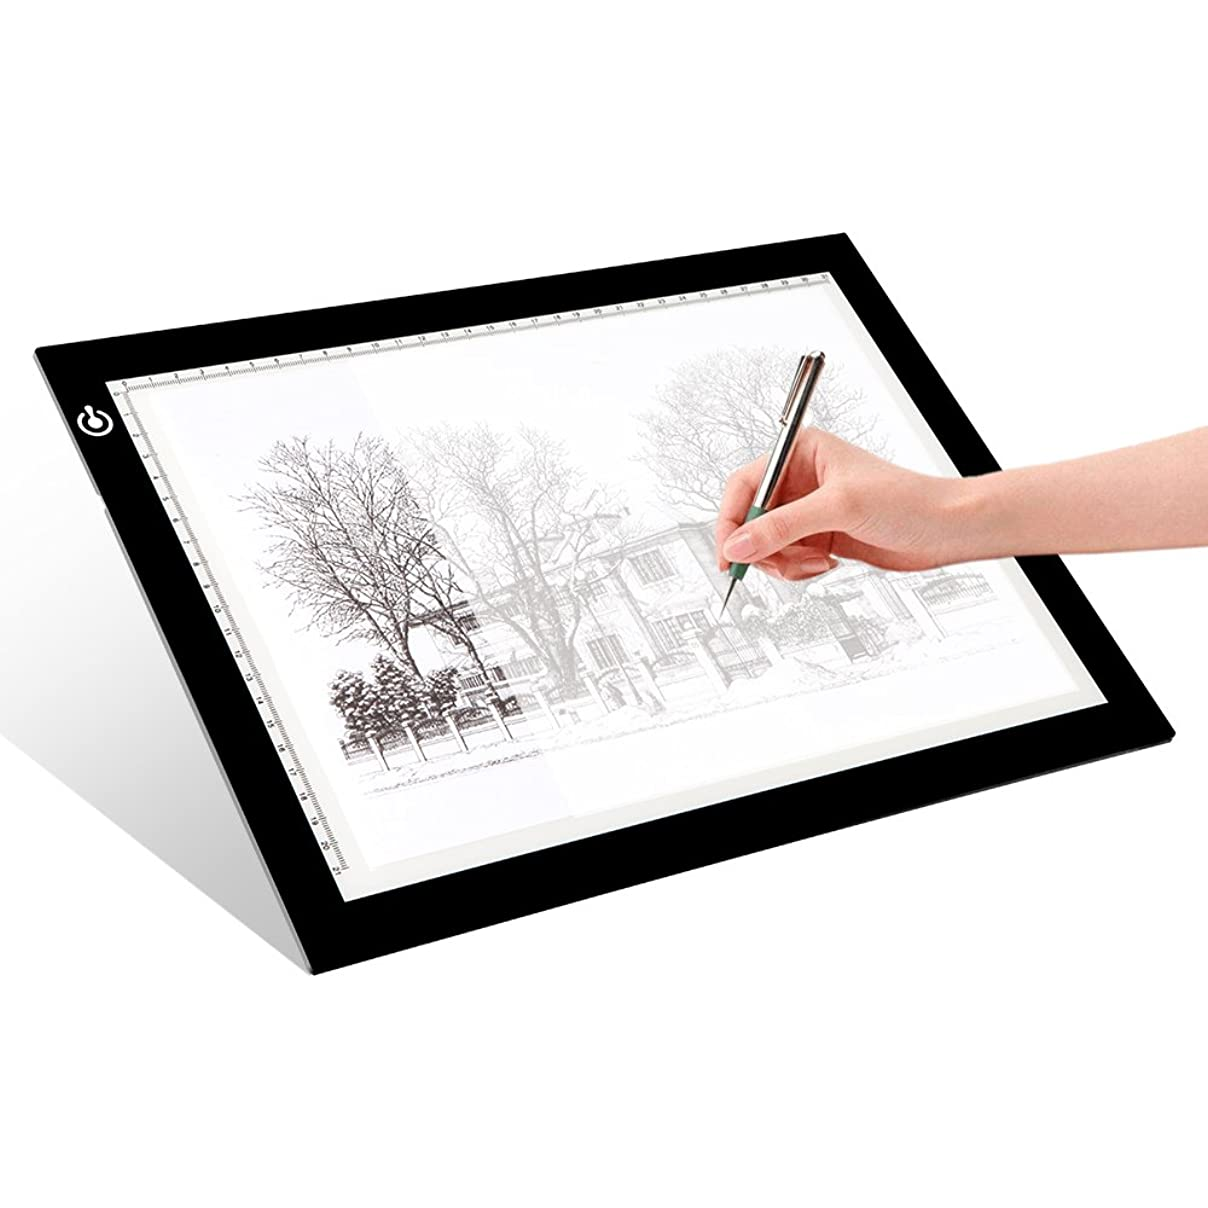 LITENERGY Portable A4 Tracing LED Copy Board Light Box, Ultra-Thin Adjustable USB Power Artcraft LED Trace Light Pad for Tattoo Drawing, Streaming, Sketching, Animation, Stenciling apfsm542931